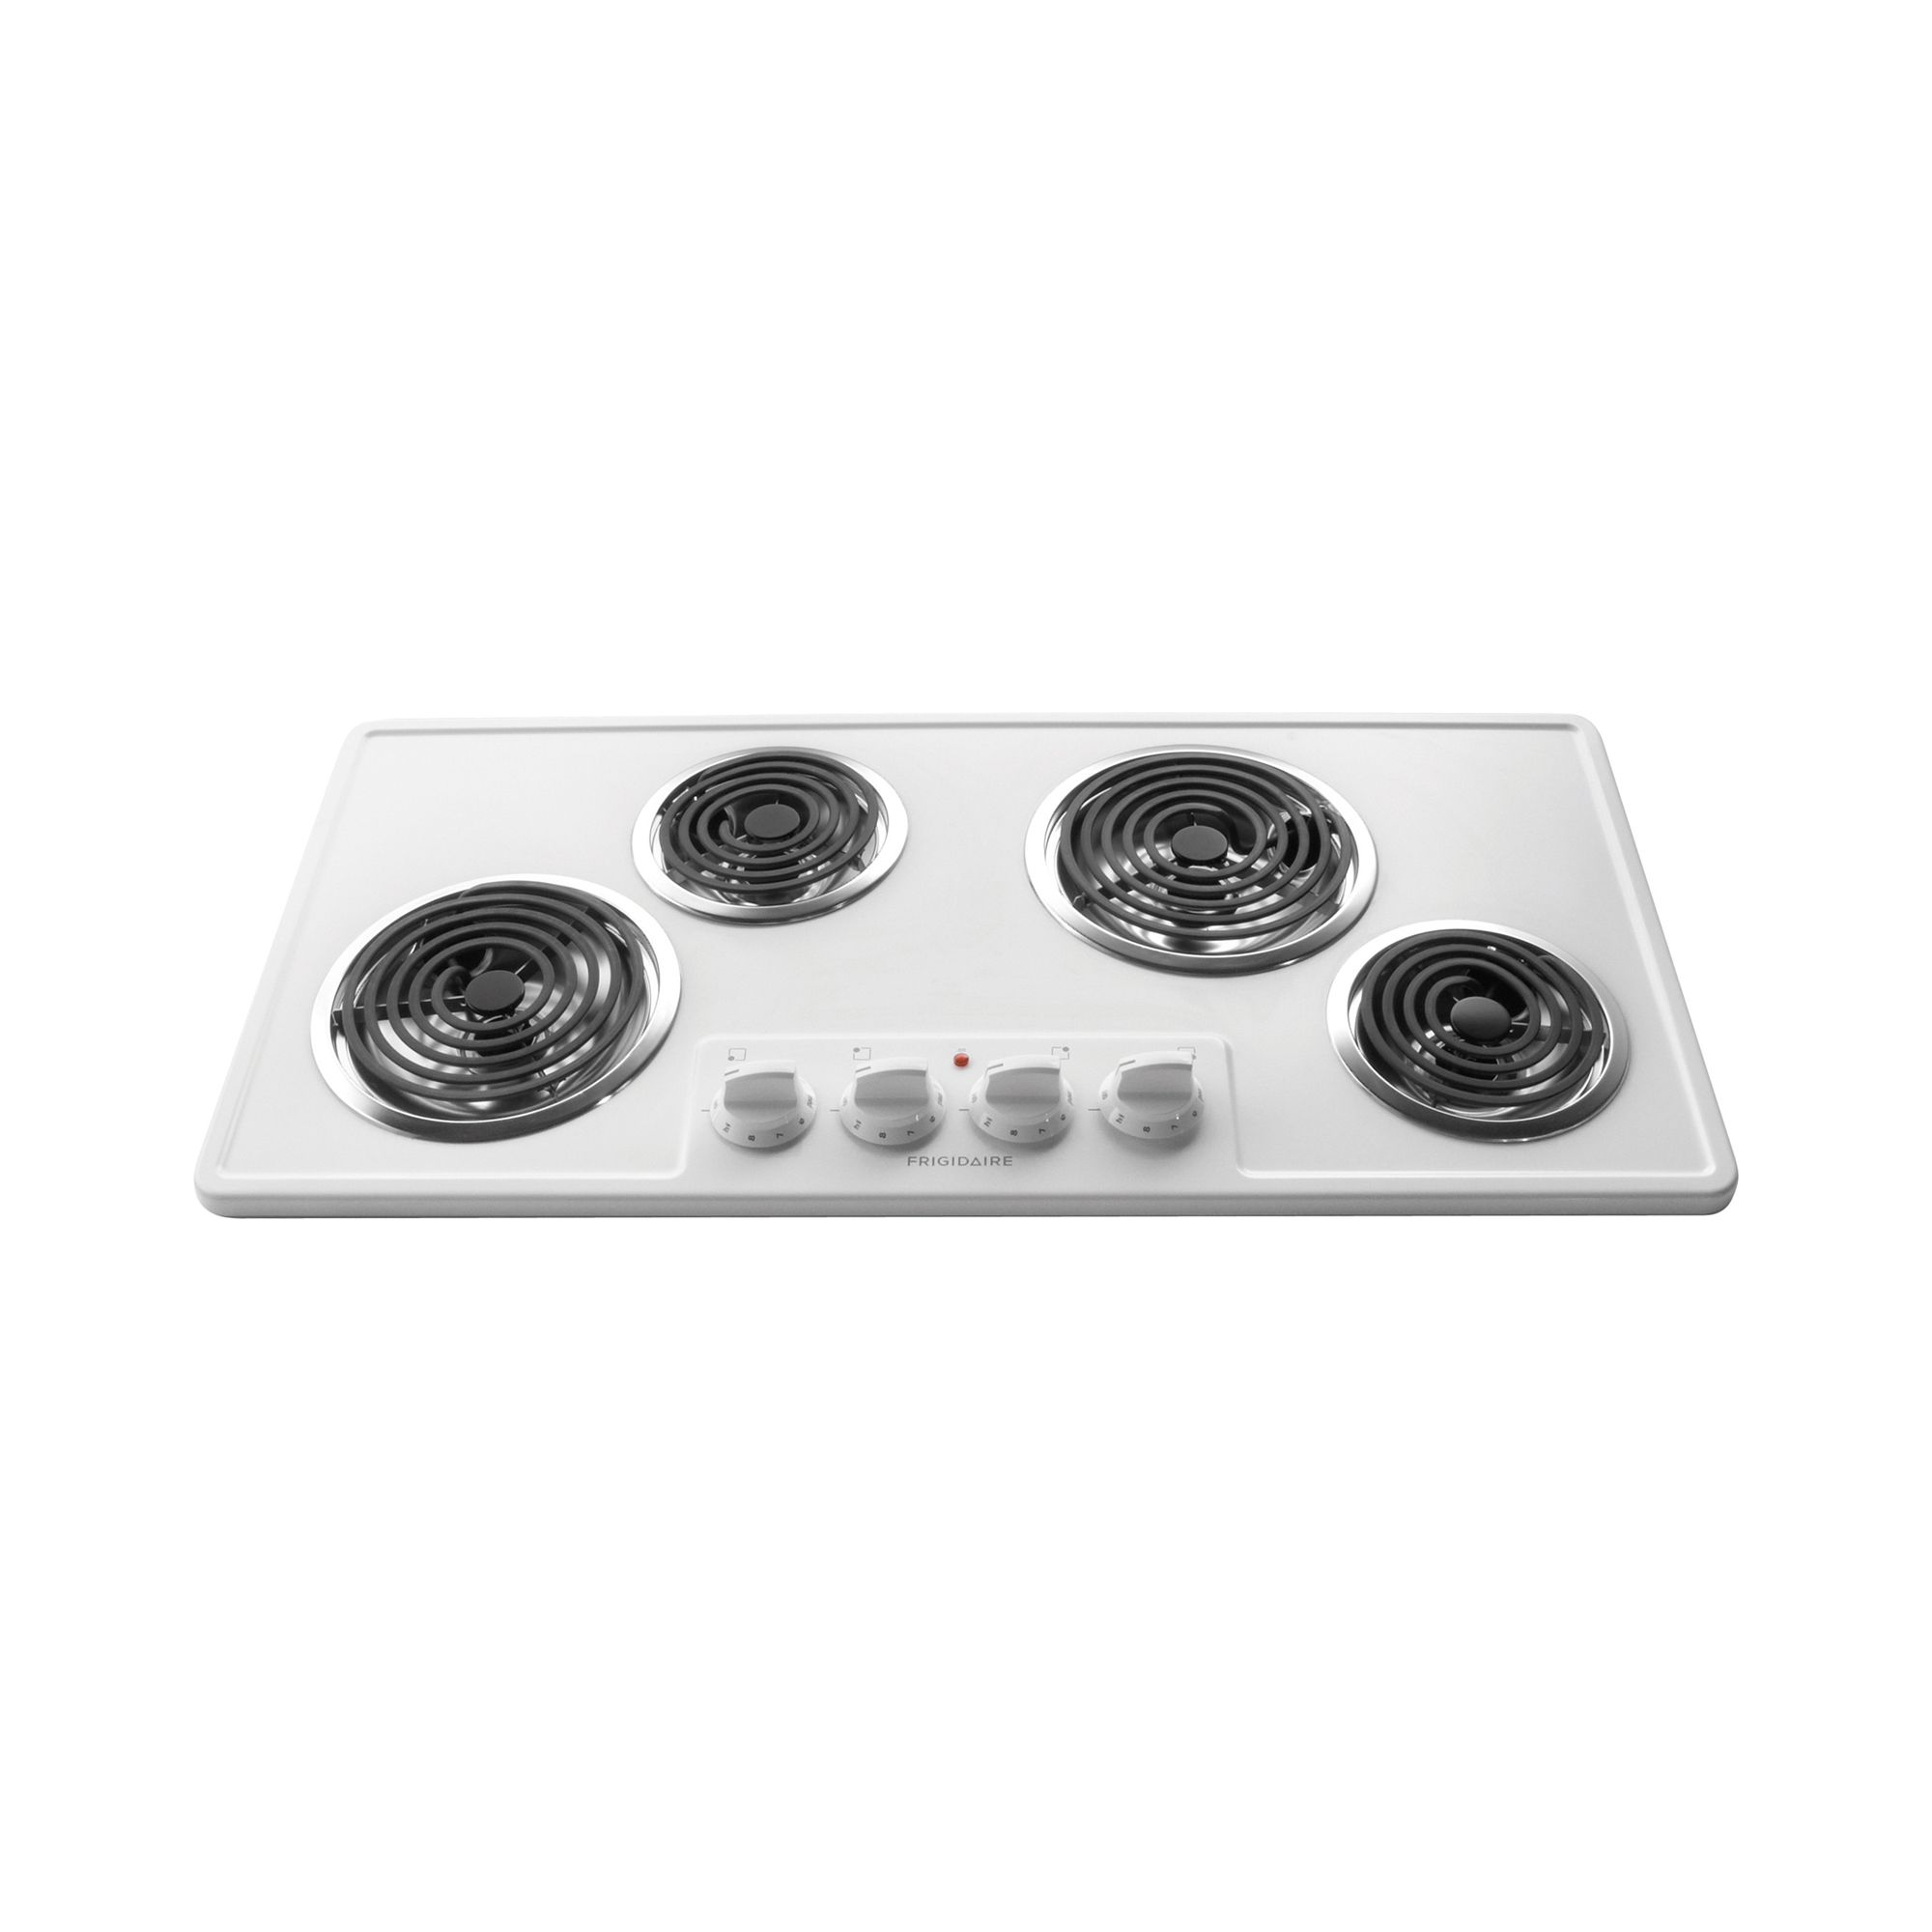 "Frigidaire FFEC3603LW 36"" Electric Cooktop with Coil Elements"